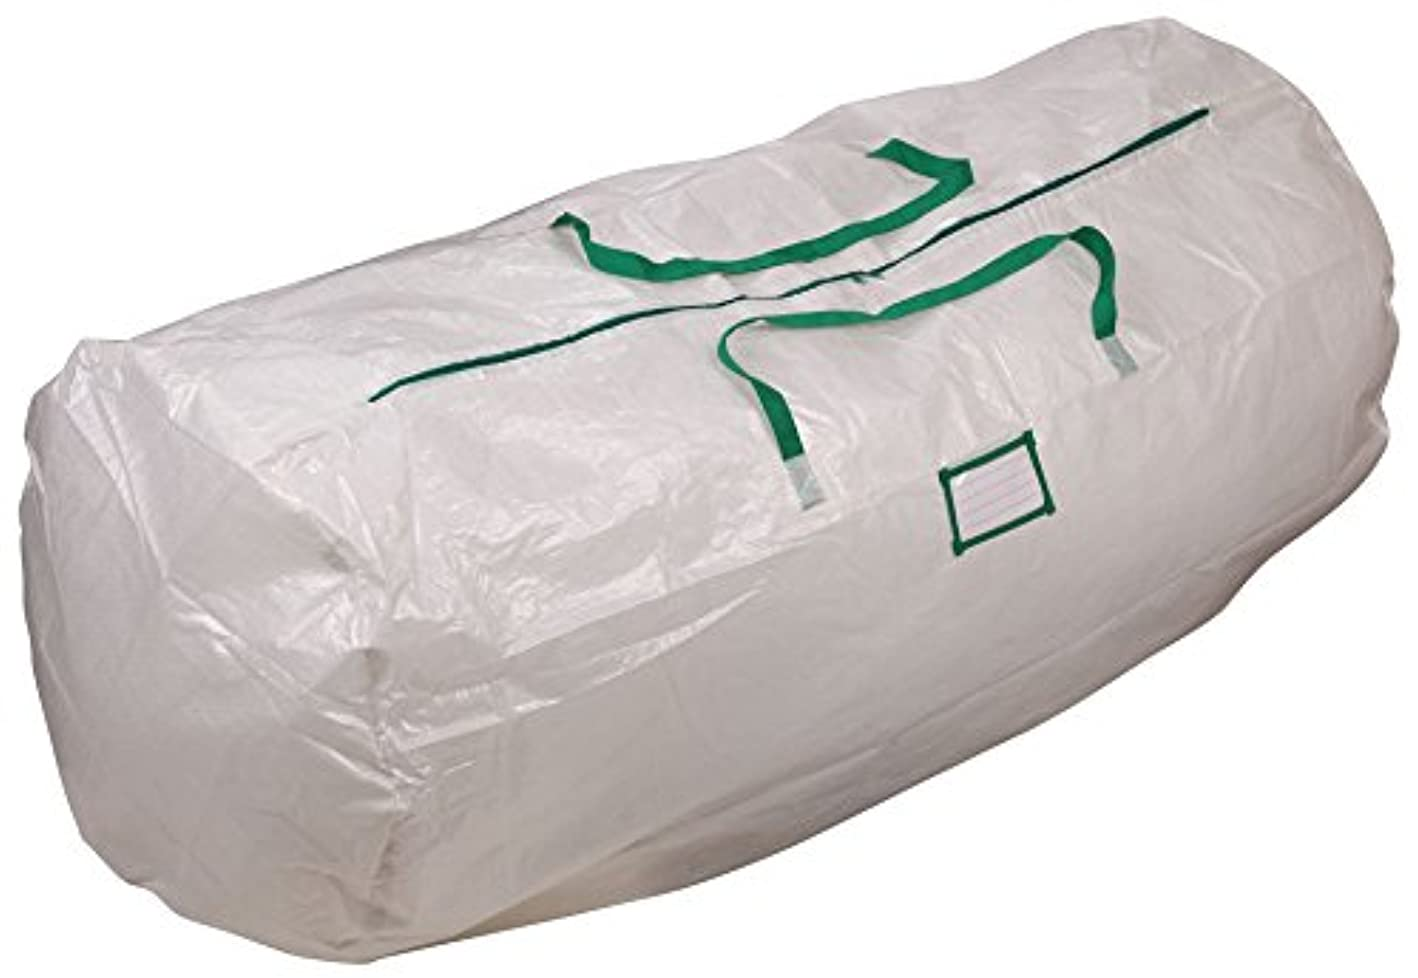 Household Essentials 6032 MightyStor Artificial Christmas Tree Storage Bag with Handles   White with Green Trim